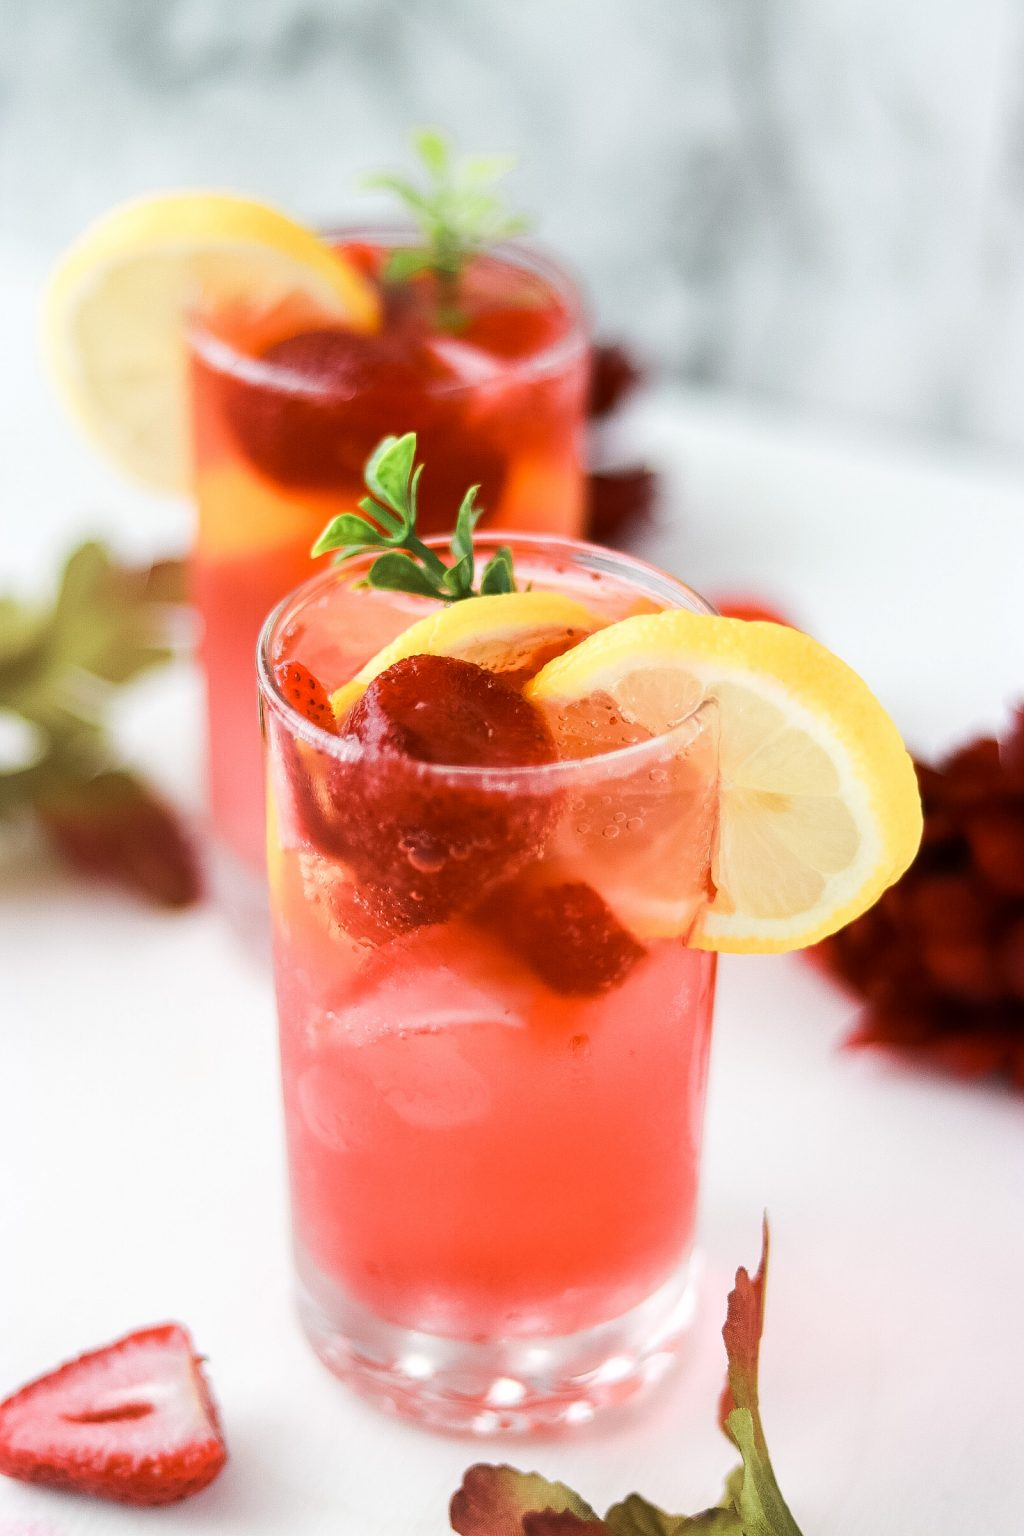 Strawberry sprite mocktail recipe 5746 1024x1536 - Strawberry Sprite Mocktail | Perfect Drink For The Summertime